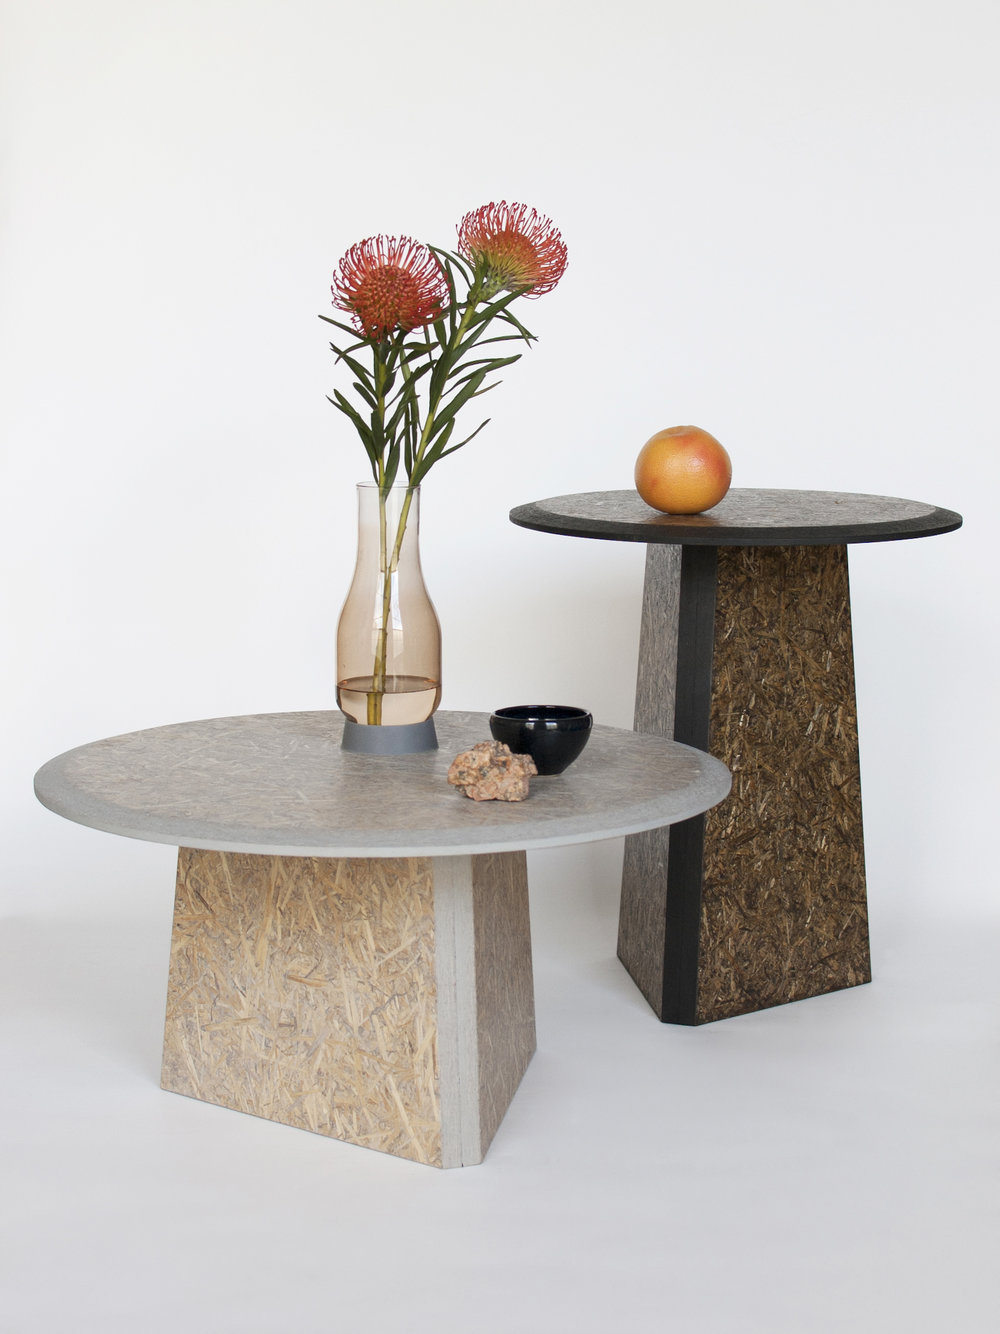 Straw sidetables -gray and black_styling general view 1- David Derksen Design.jpg